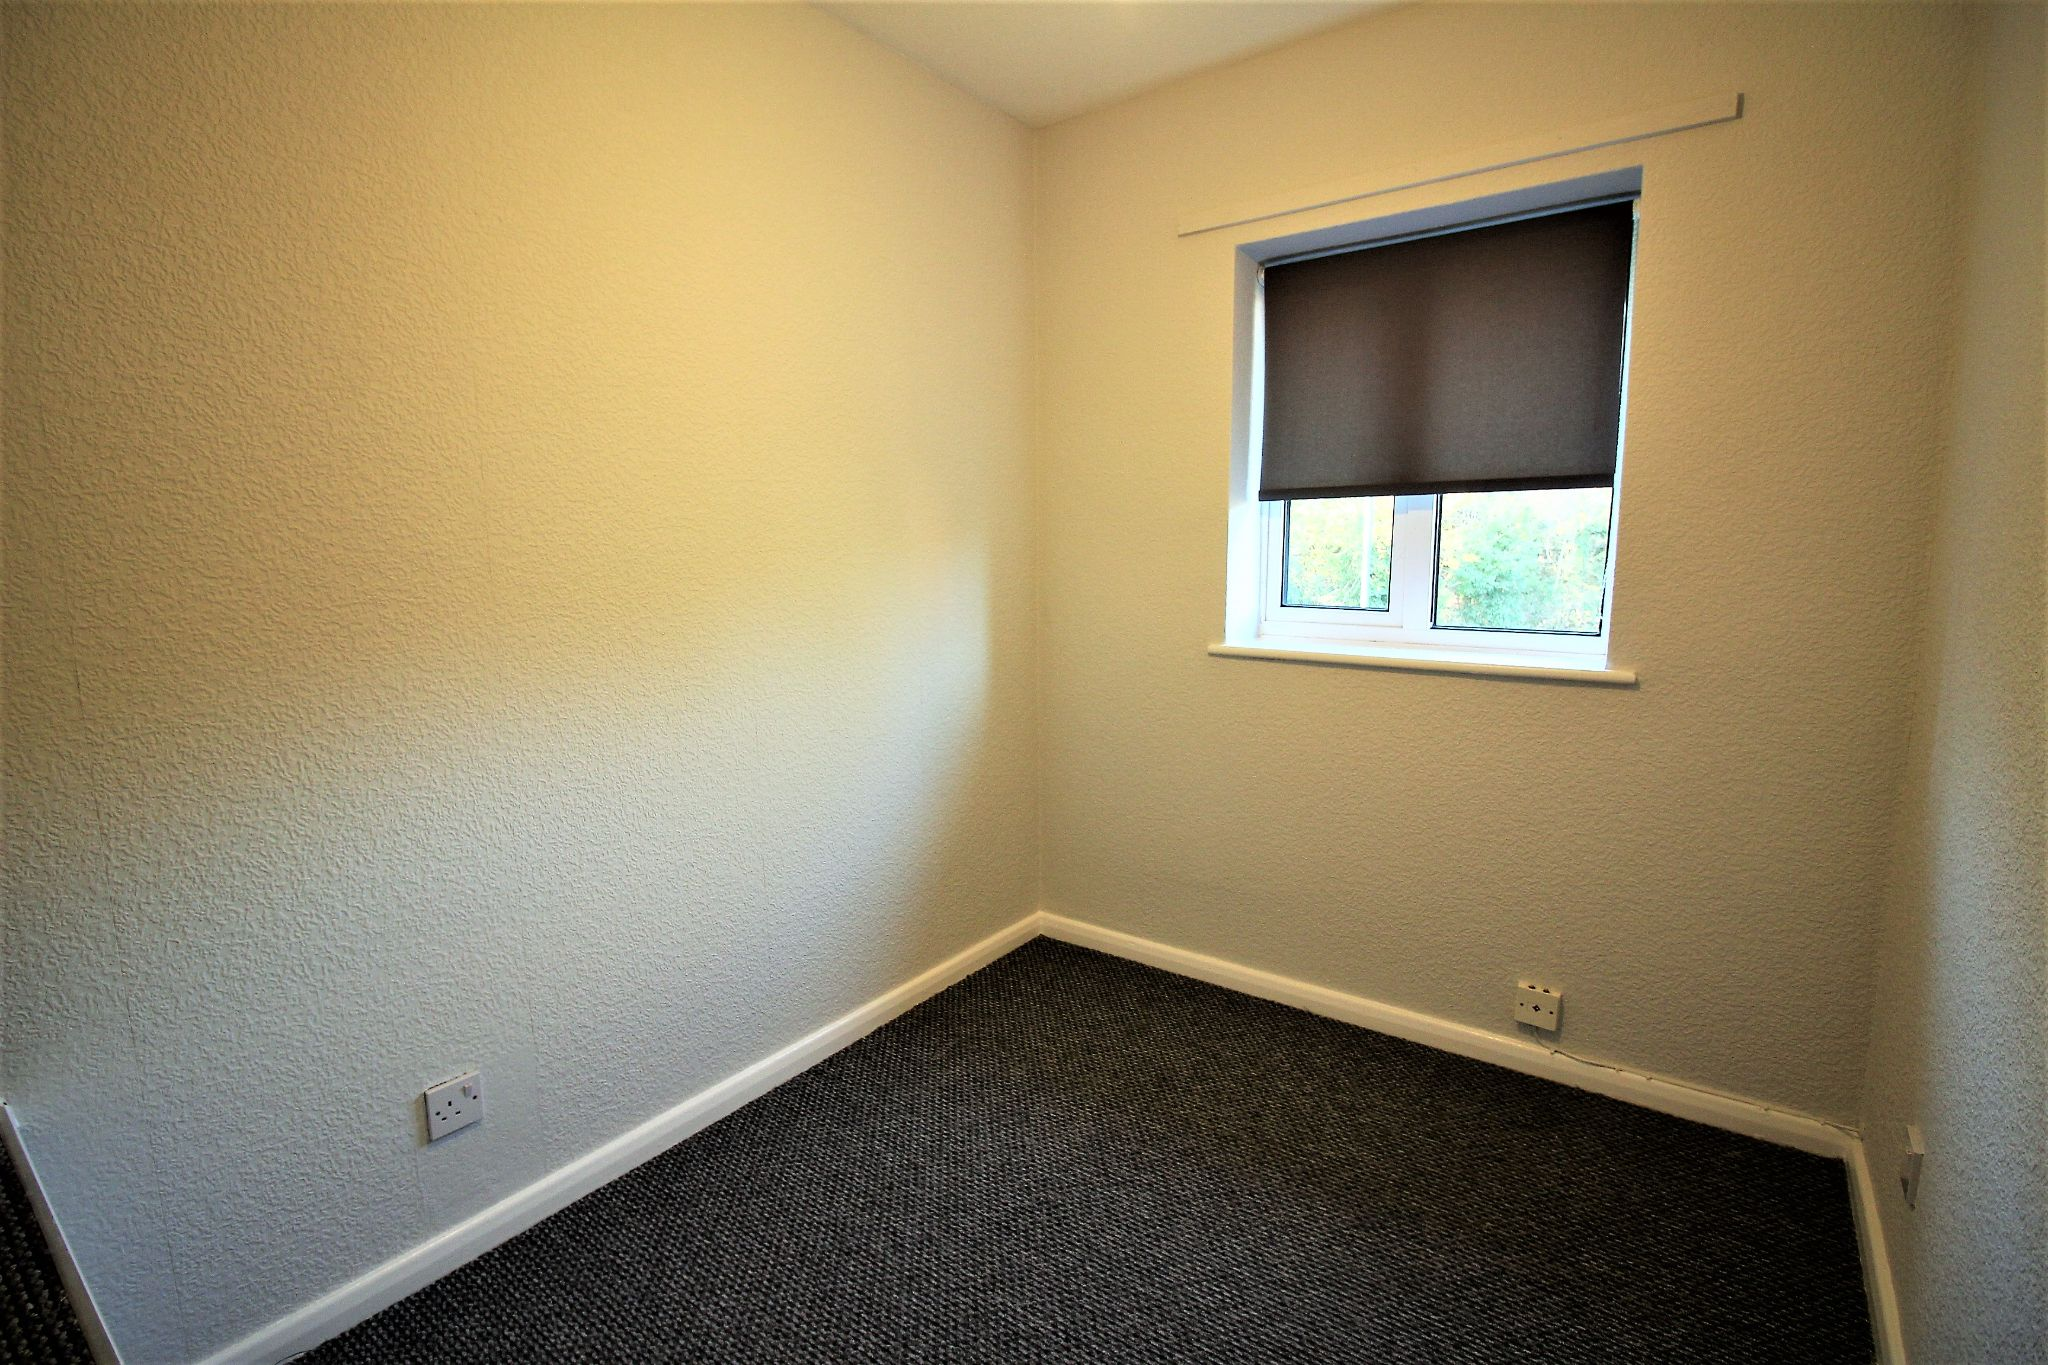 3 bedroom semi-detached house Let Agreed in Solihull - Photograph 11.